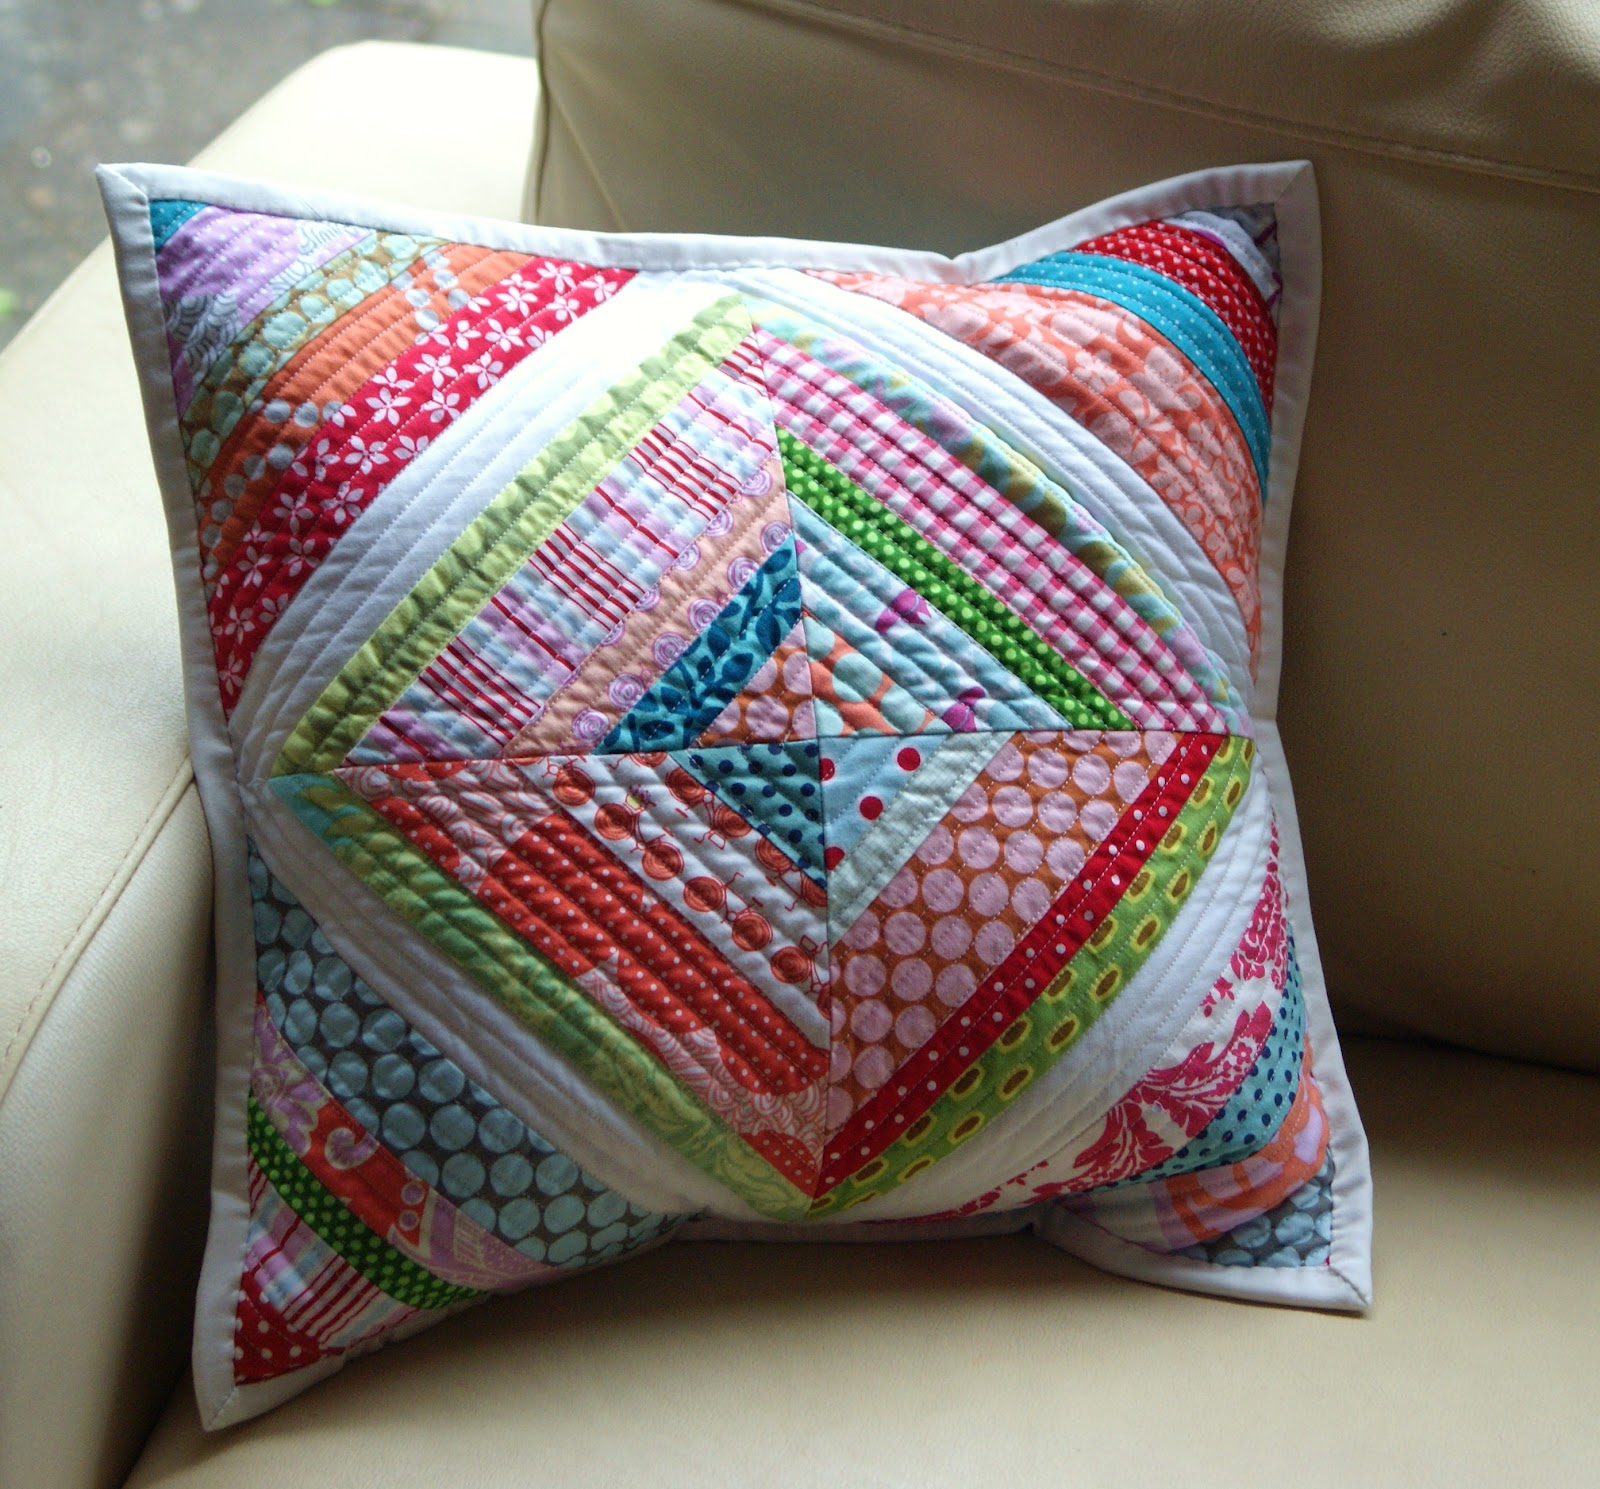 Quilting Patterns For Pillow Covers : The Dining Room Drawers: String Quilt Cushion